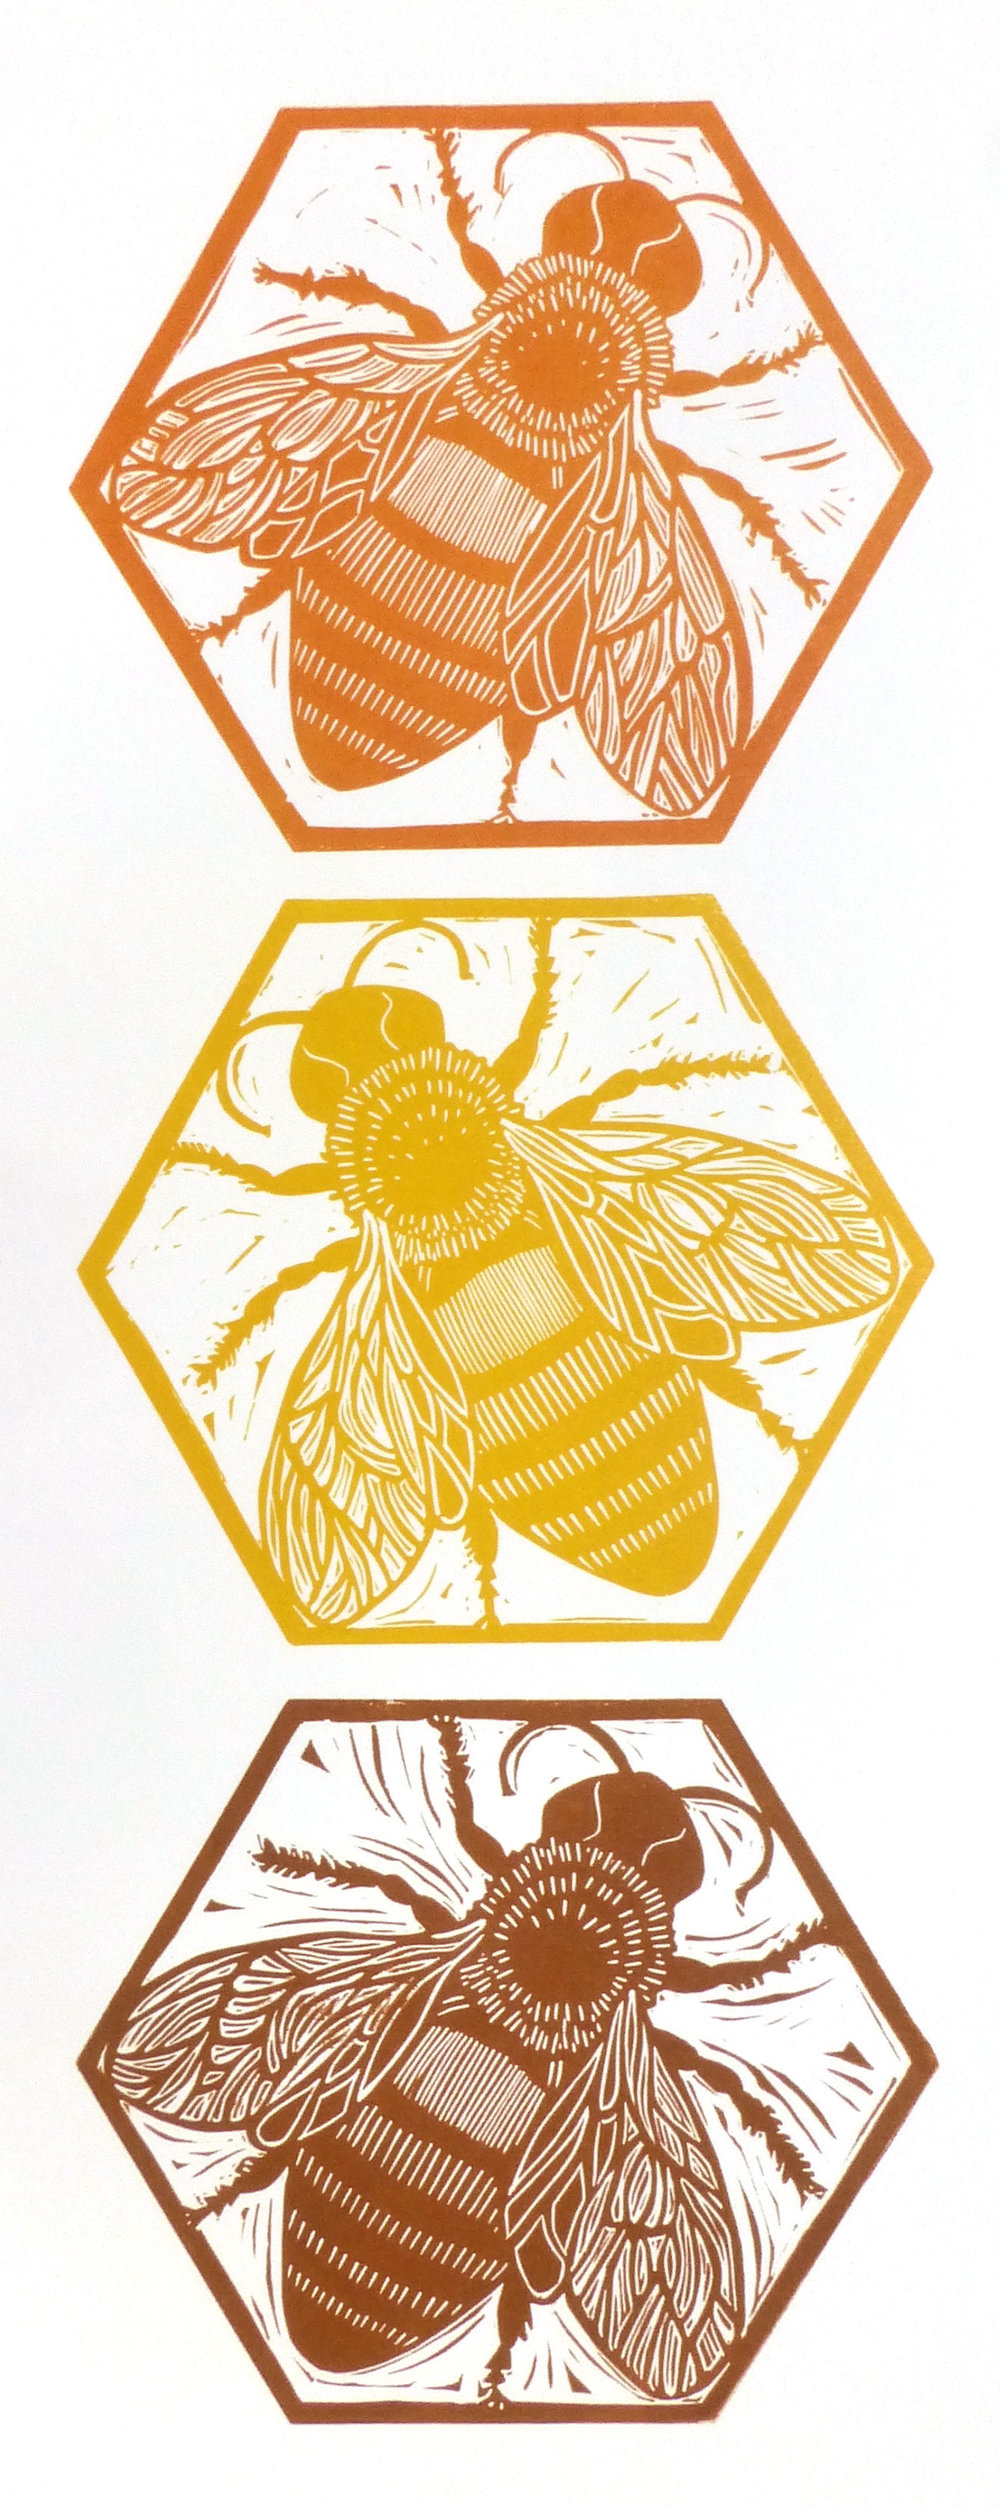 Traffic Light Bees   Linocut, 2016  Edition of 10  Paper size: 50 cm x 20 cm  $60